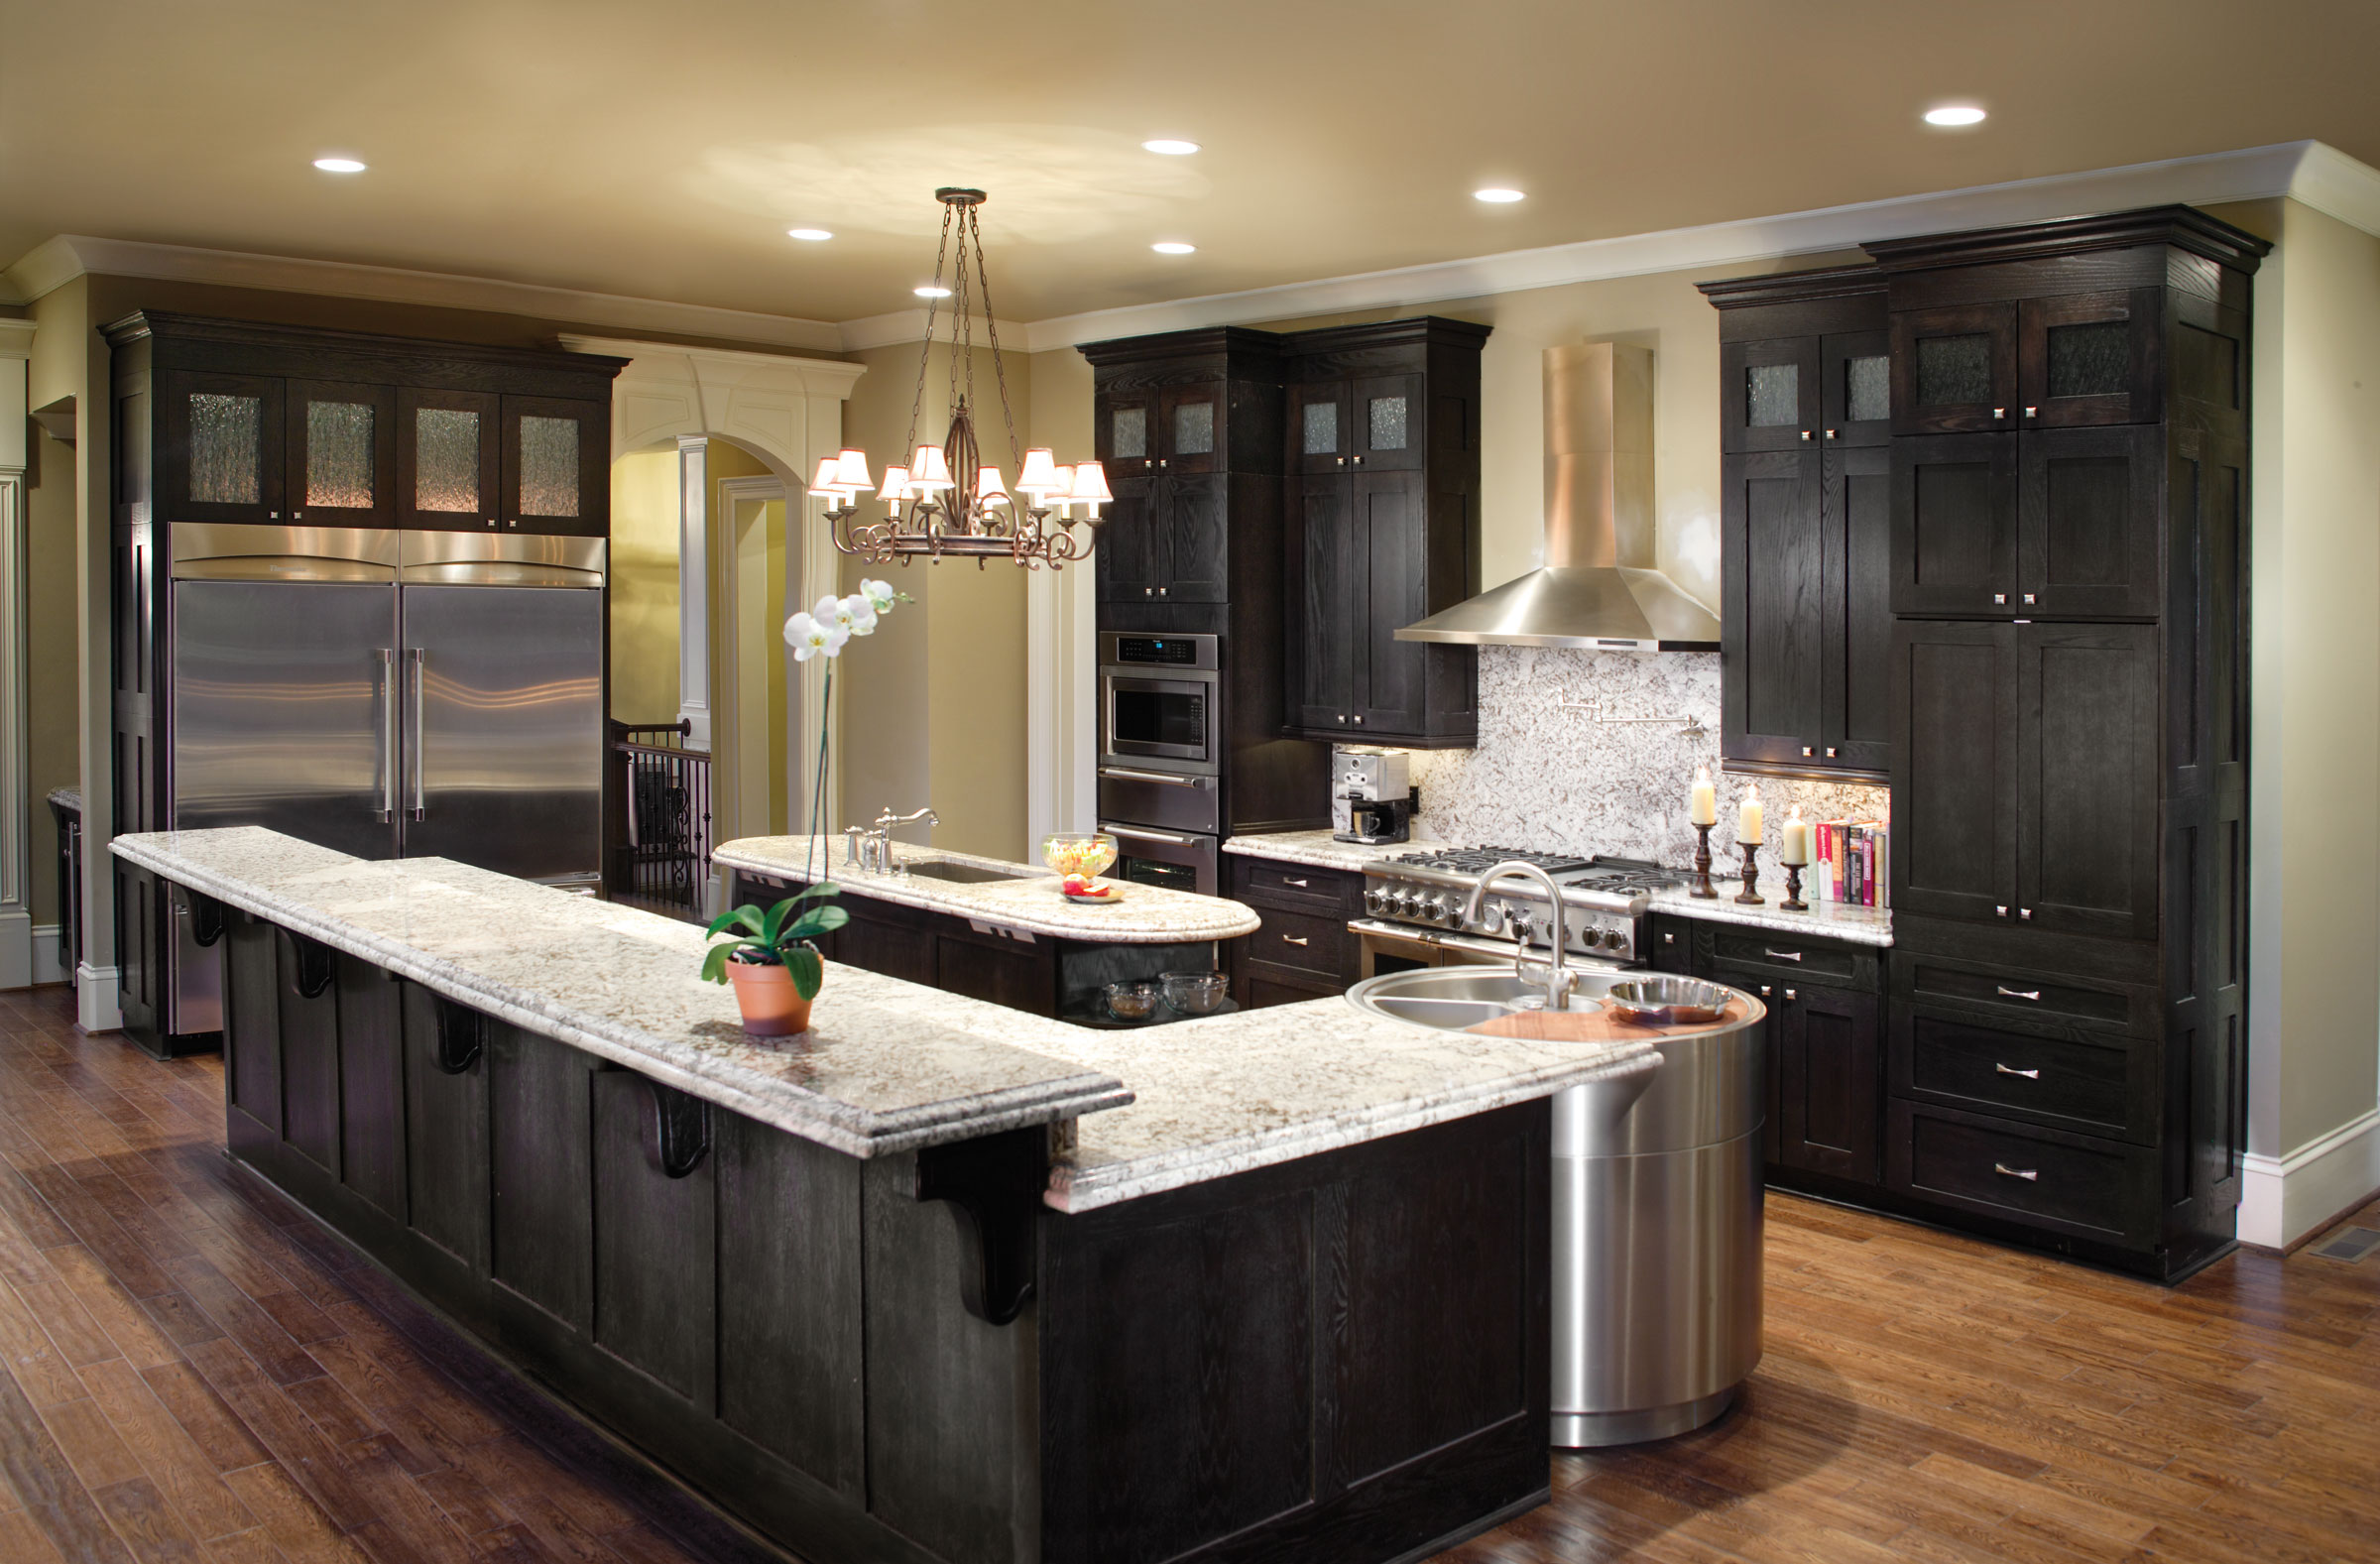 Custom bathroom kitchen cabinets phoenix cabinets by for Kitchen bathroom design